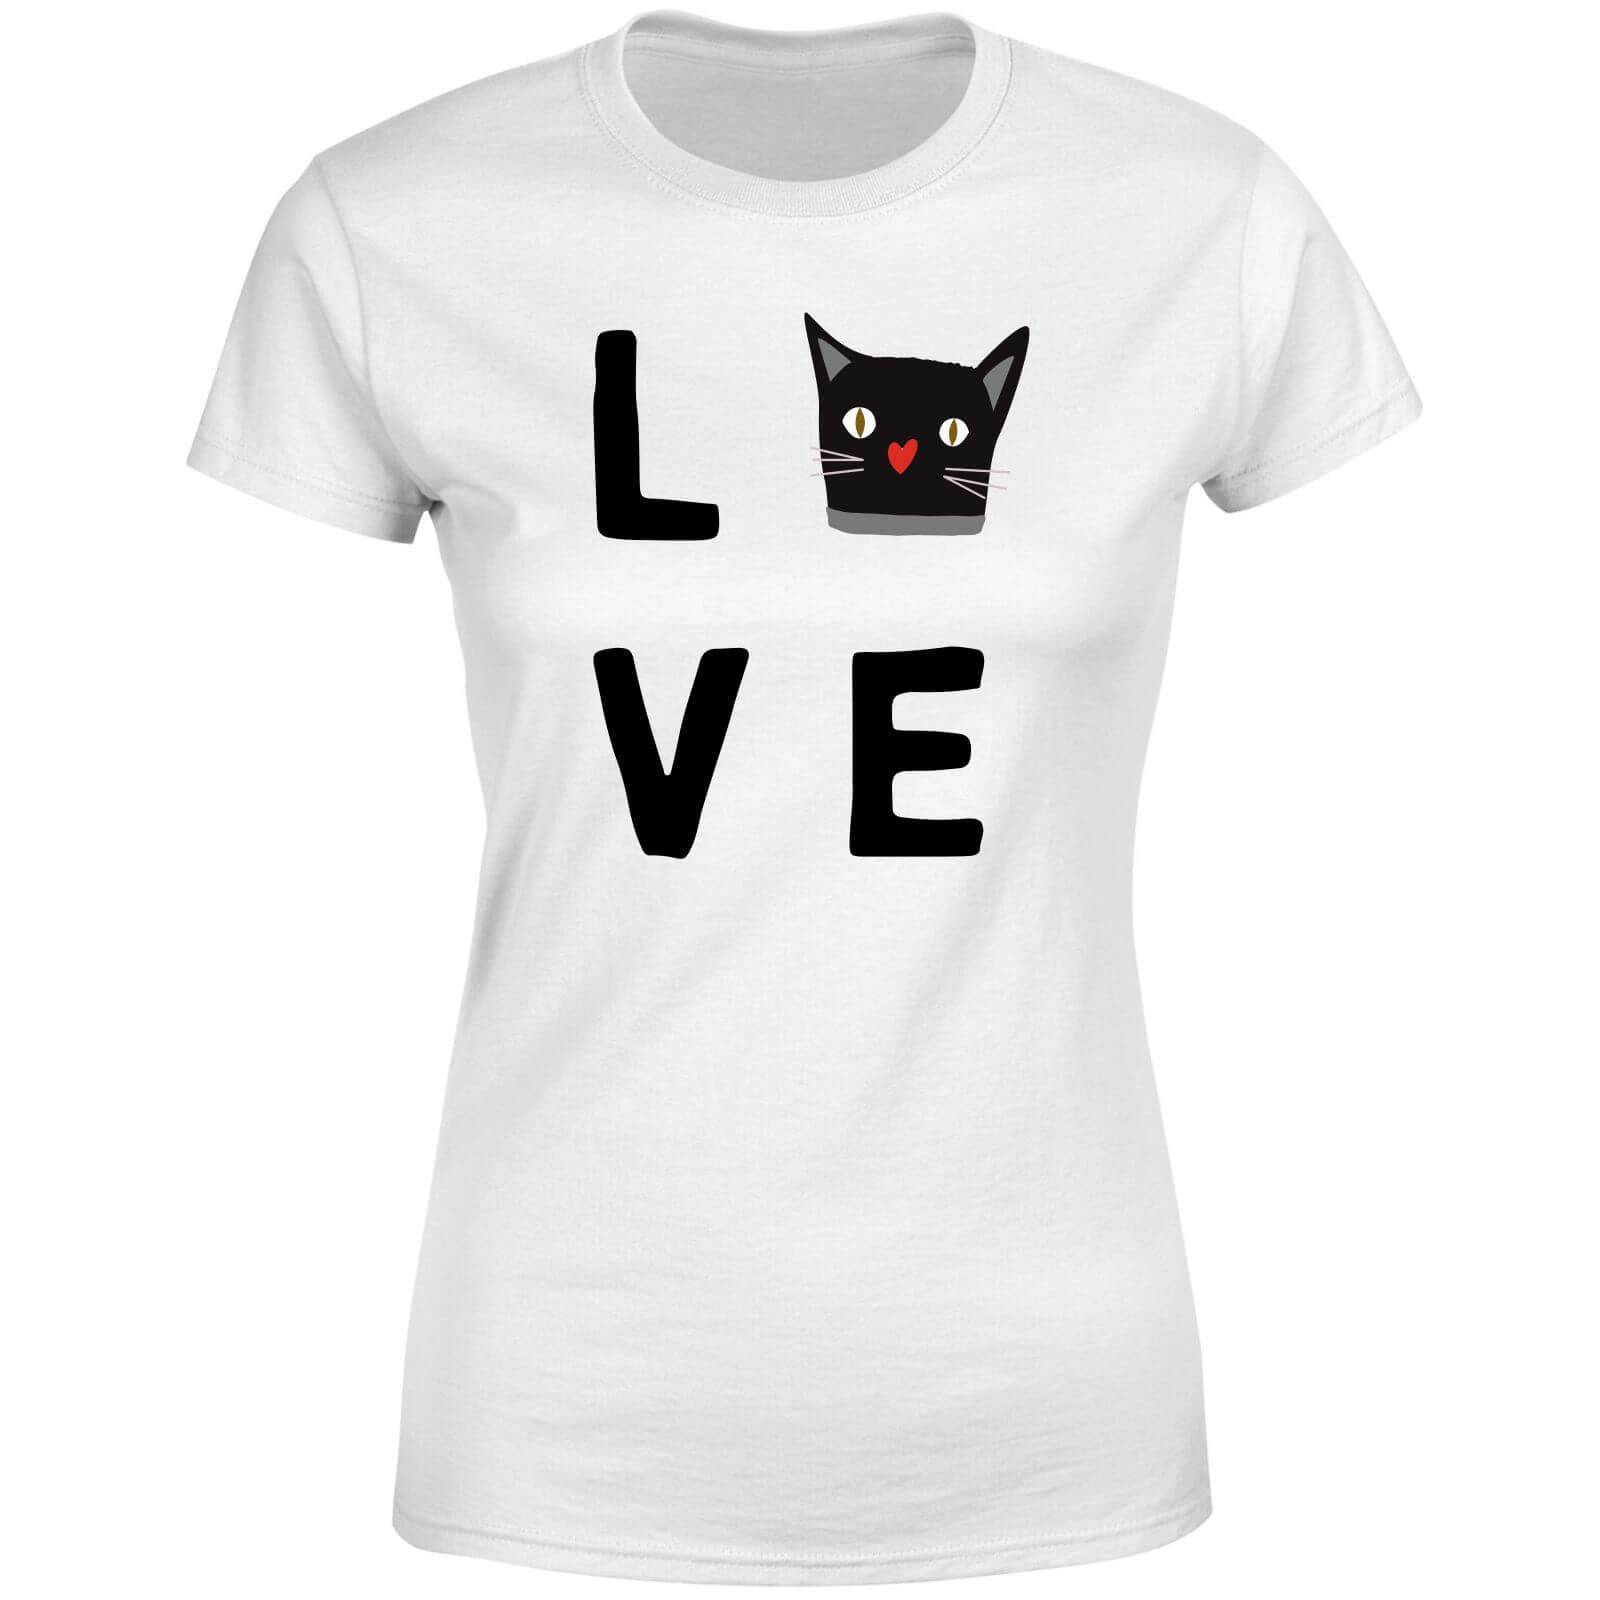 The Pet Collection Cat Love Women's T-Shirt - White - XS - White